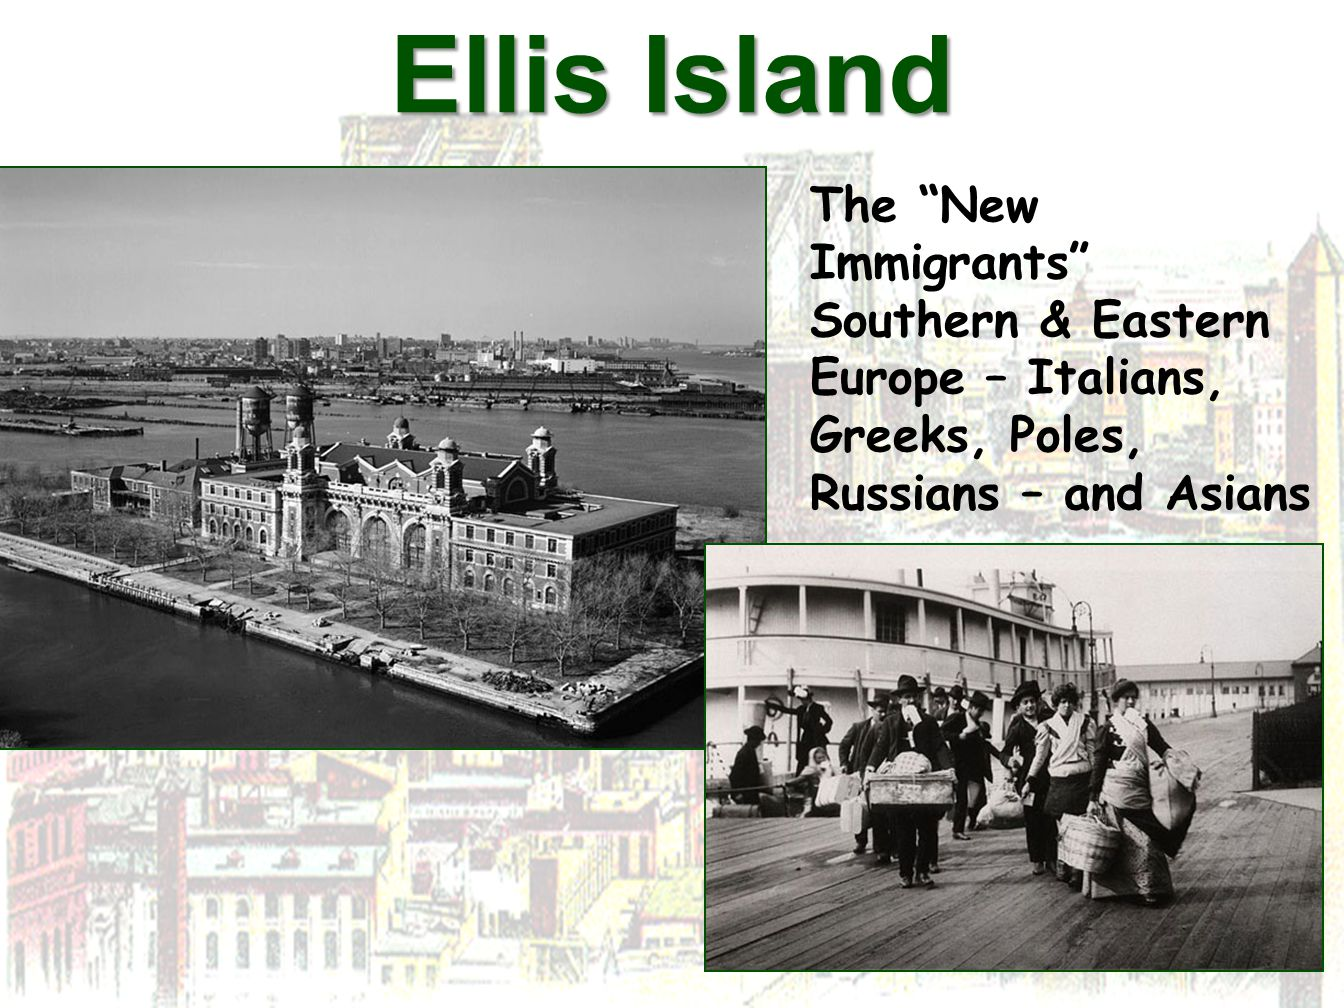 Ellis Island The New Immigrants Southern & Eastern Europe – Italians, Greeks, Poles, Russians – and Asians